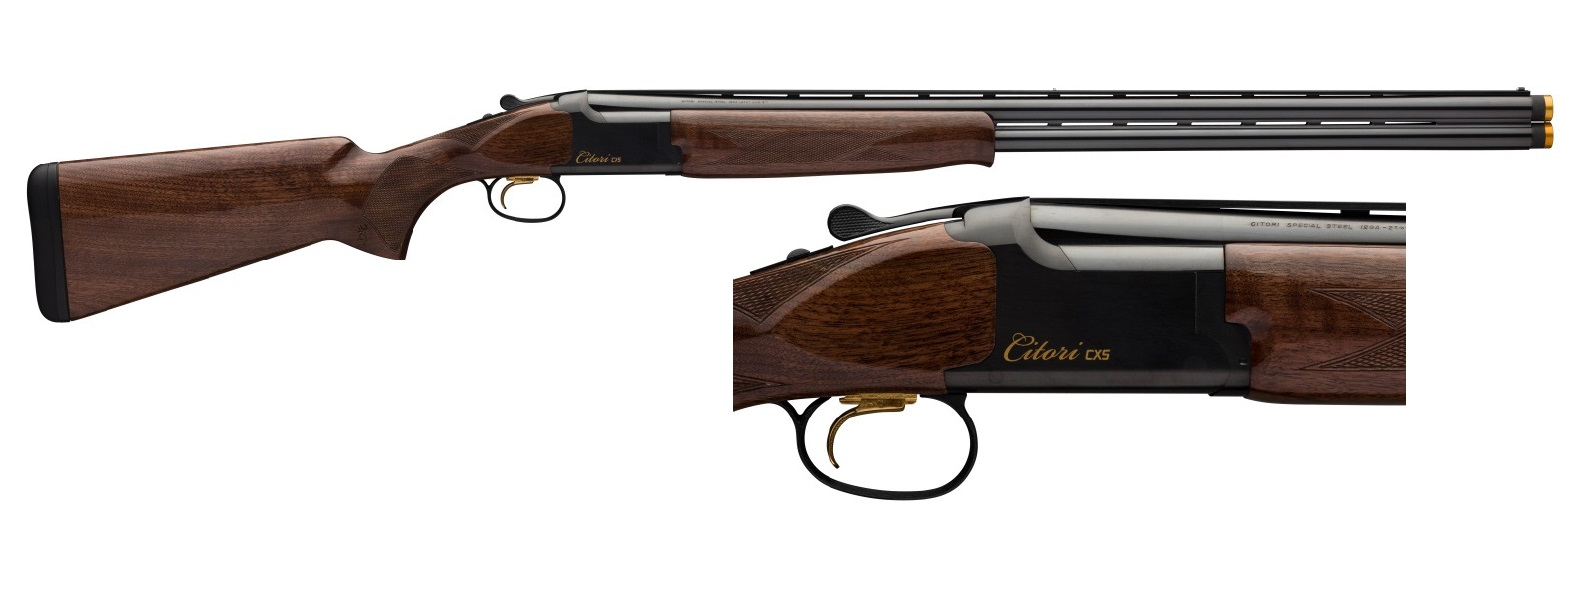 Browning Citori CX (Crossover) 12 Gauge